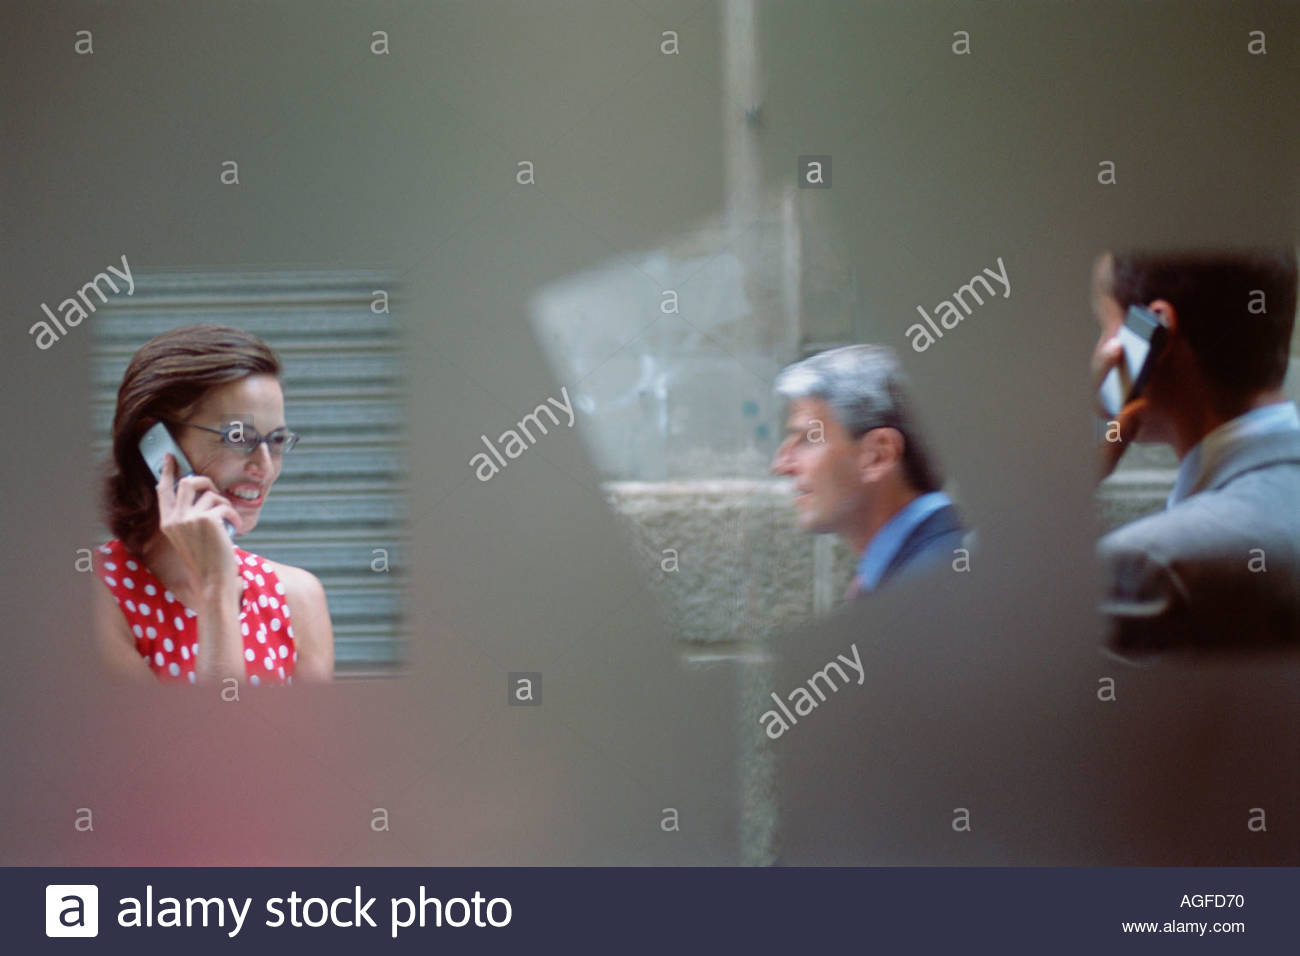 Behind closed doors - Stock Image